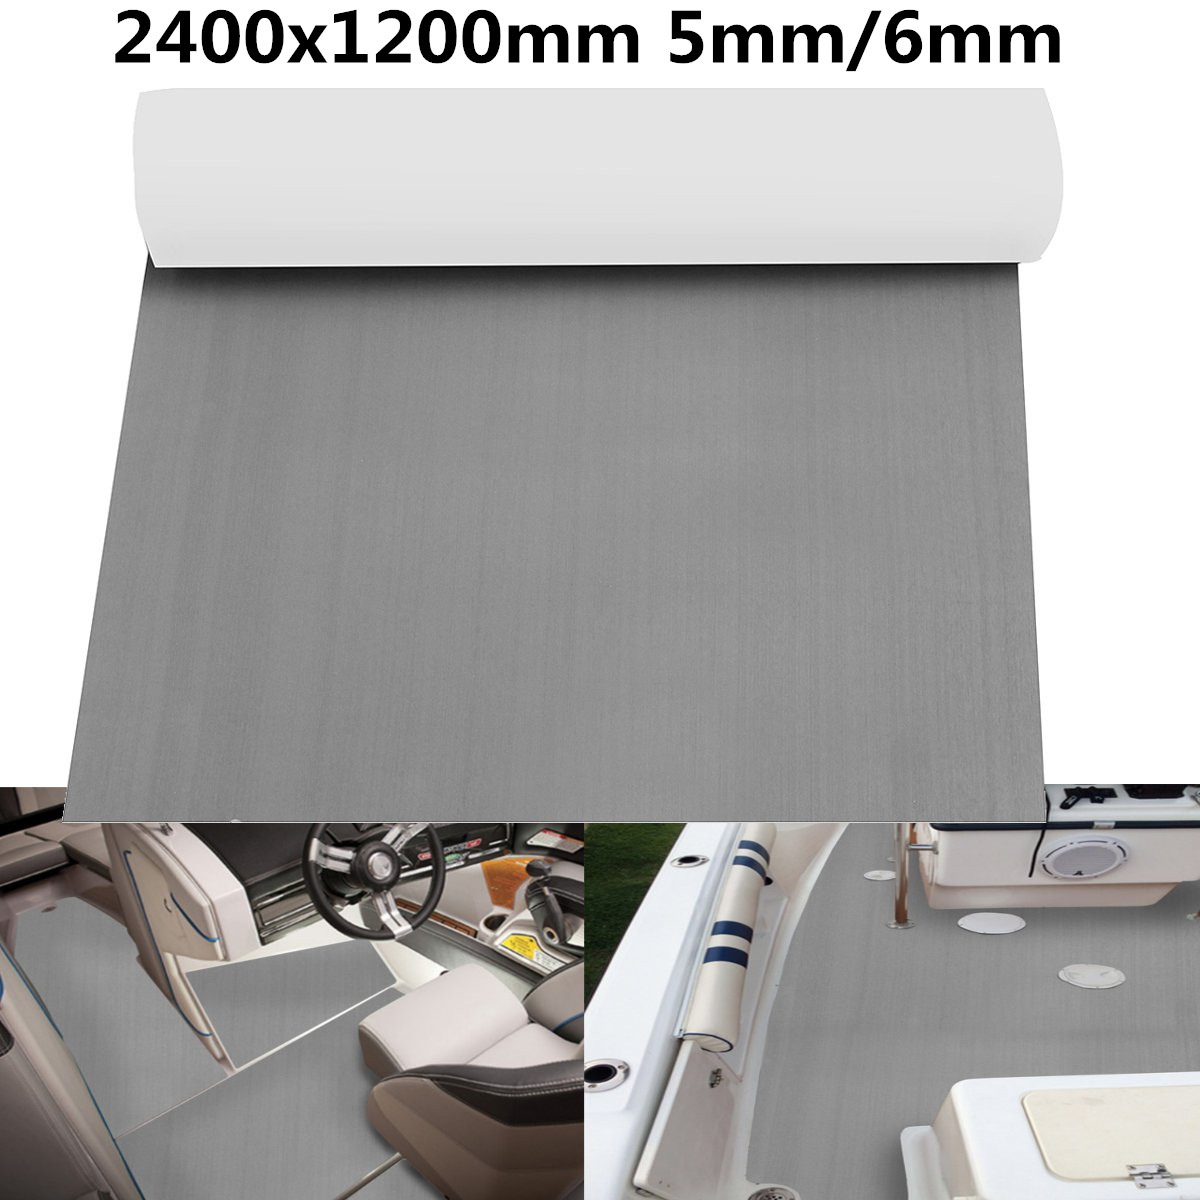 Self-Adhesive 2400x1200mm 5mm/6mm EVA Foam Marine Boat Yacht Flooring Synthetic Faux Teak Decking Sheet Pad Floor Mat Brown GraySelf-Adhesive 2400x1200mm 5mm/6mm EVA Foam Marine Boat Yacht Flooring Synthetic Faux Teak Decking Sheet Pad Floor Mat Brown Gray